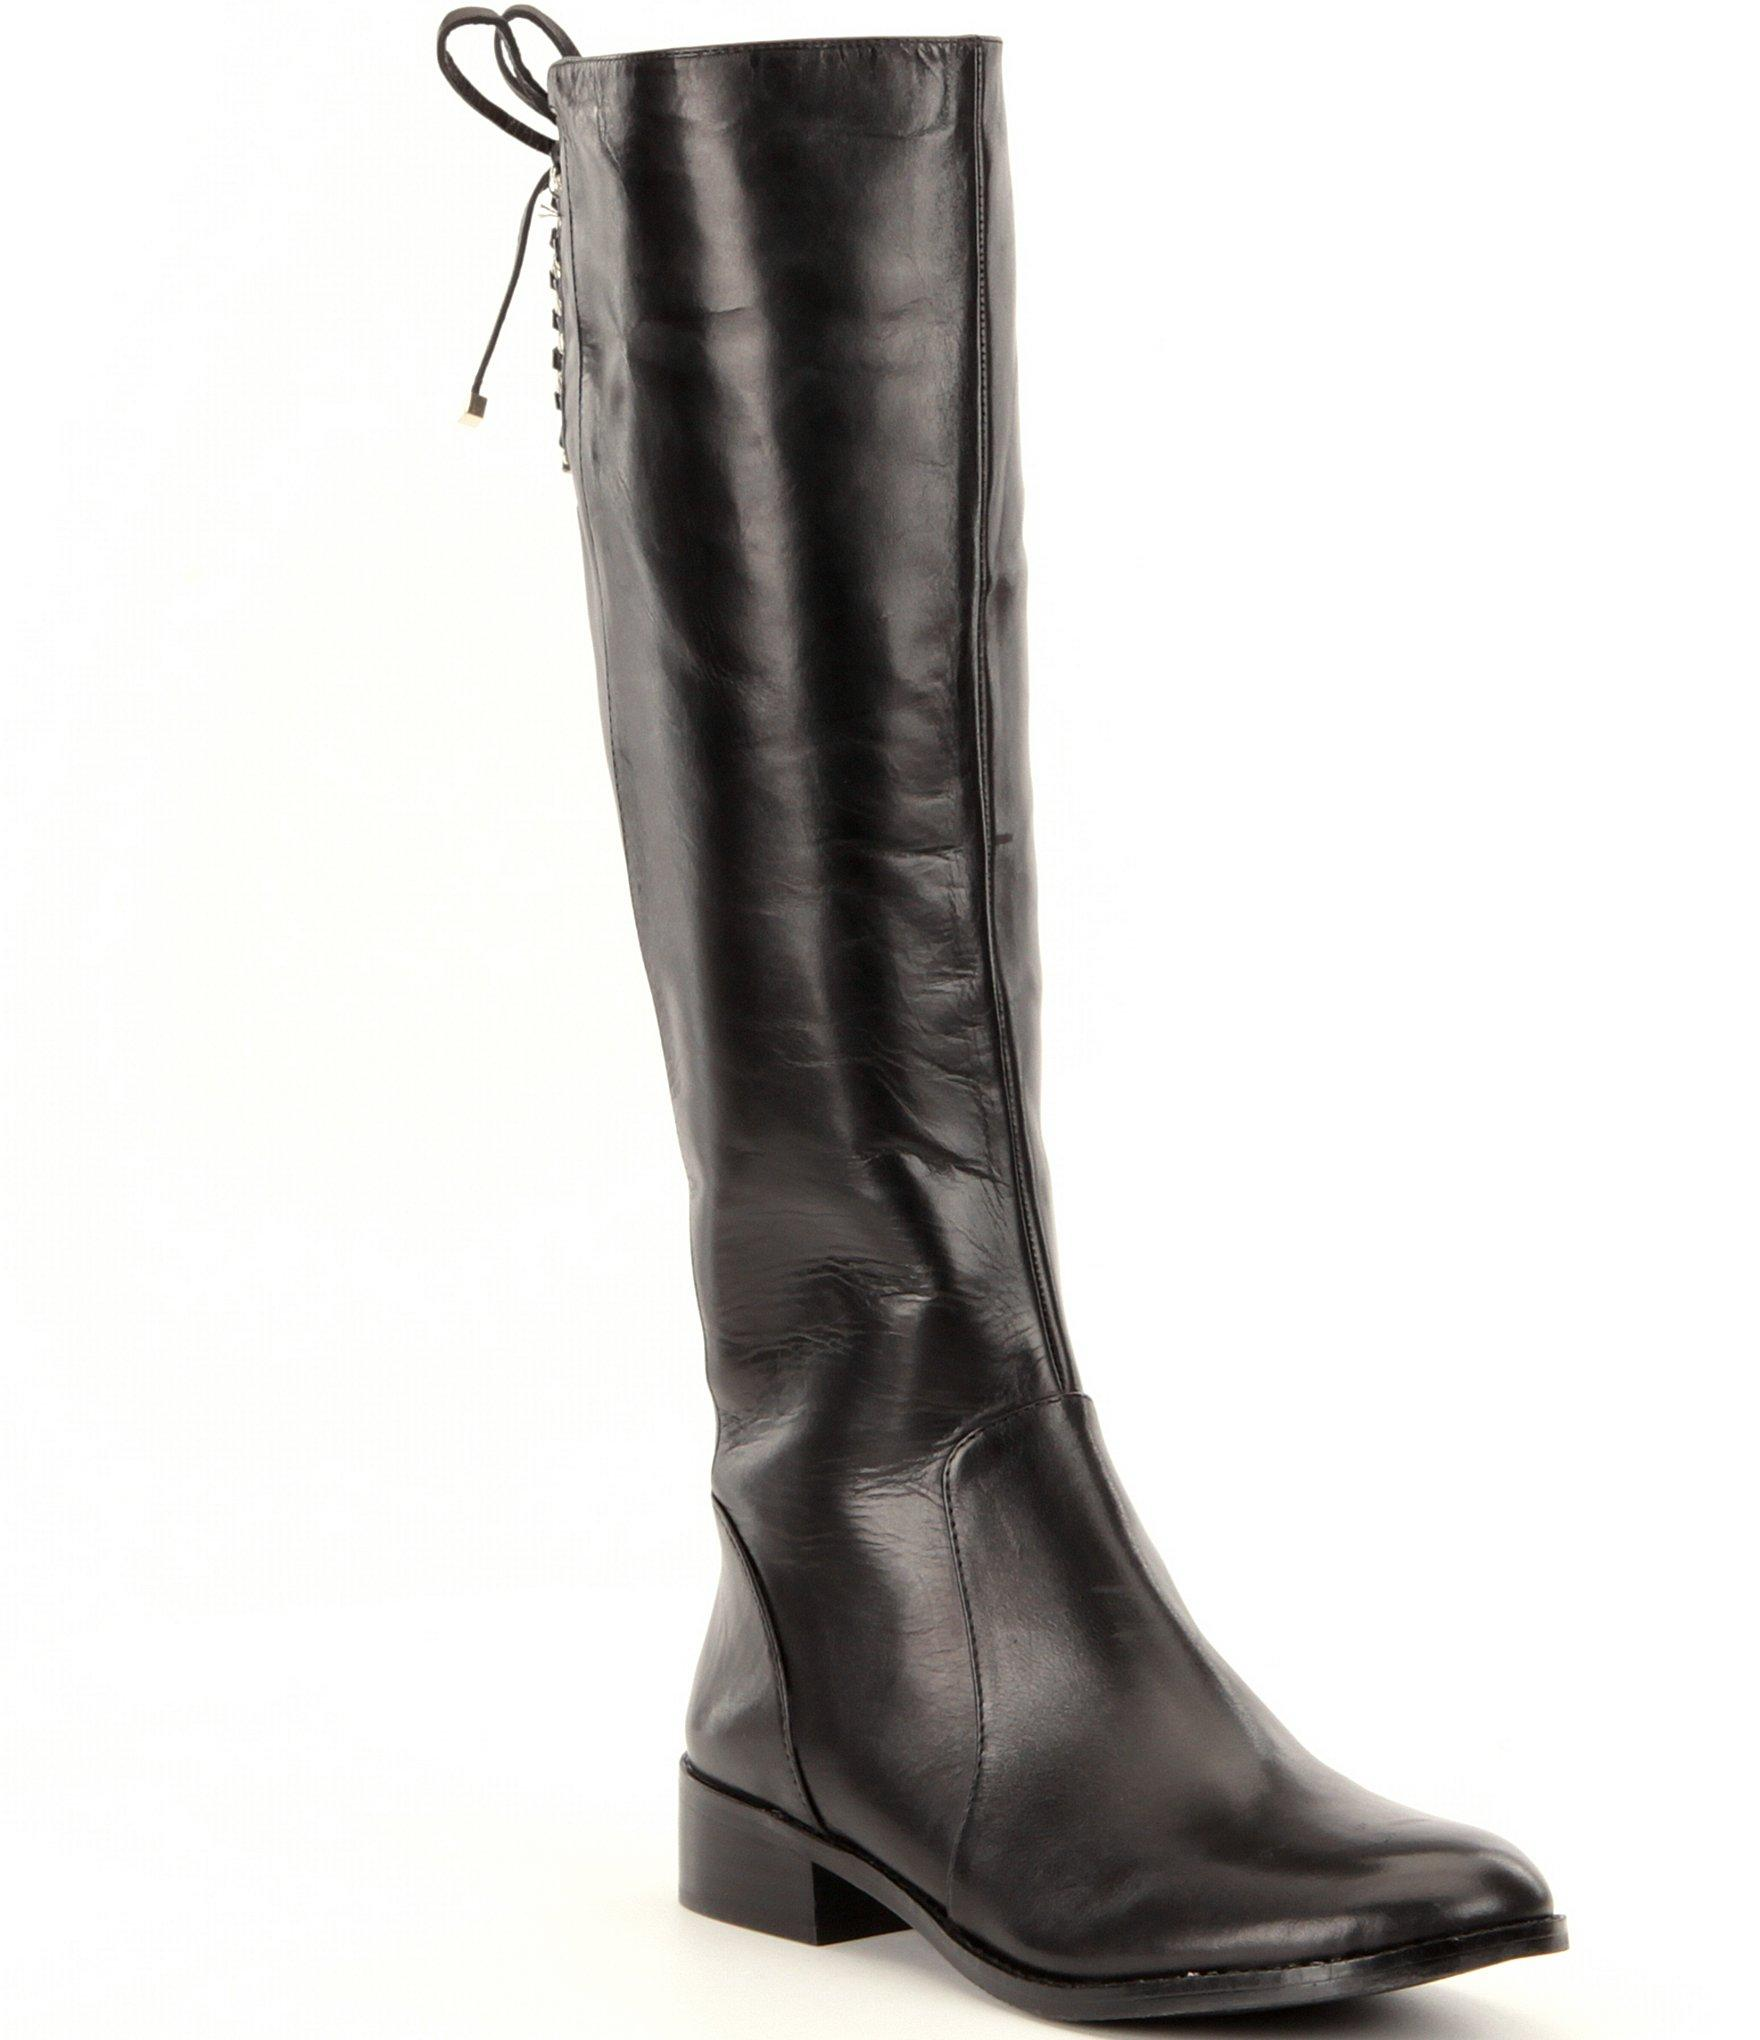 Antonio melani Eastynss Narrow Calf Riding Boots in Black | Lyst